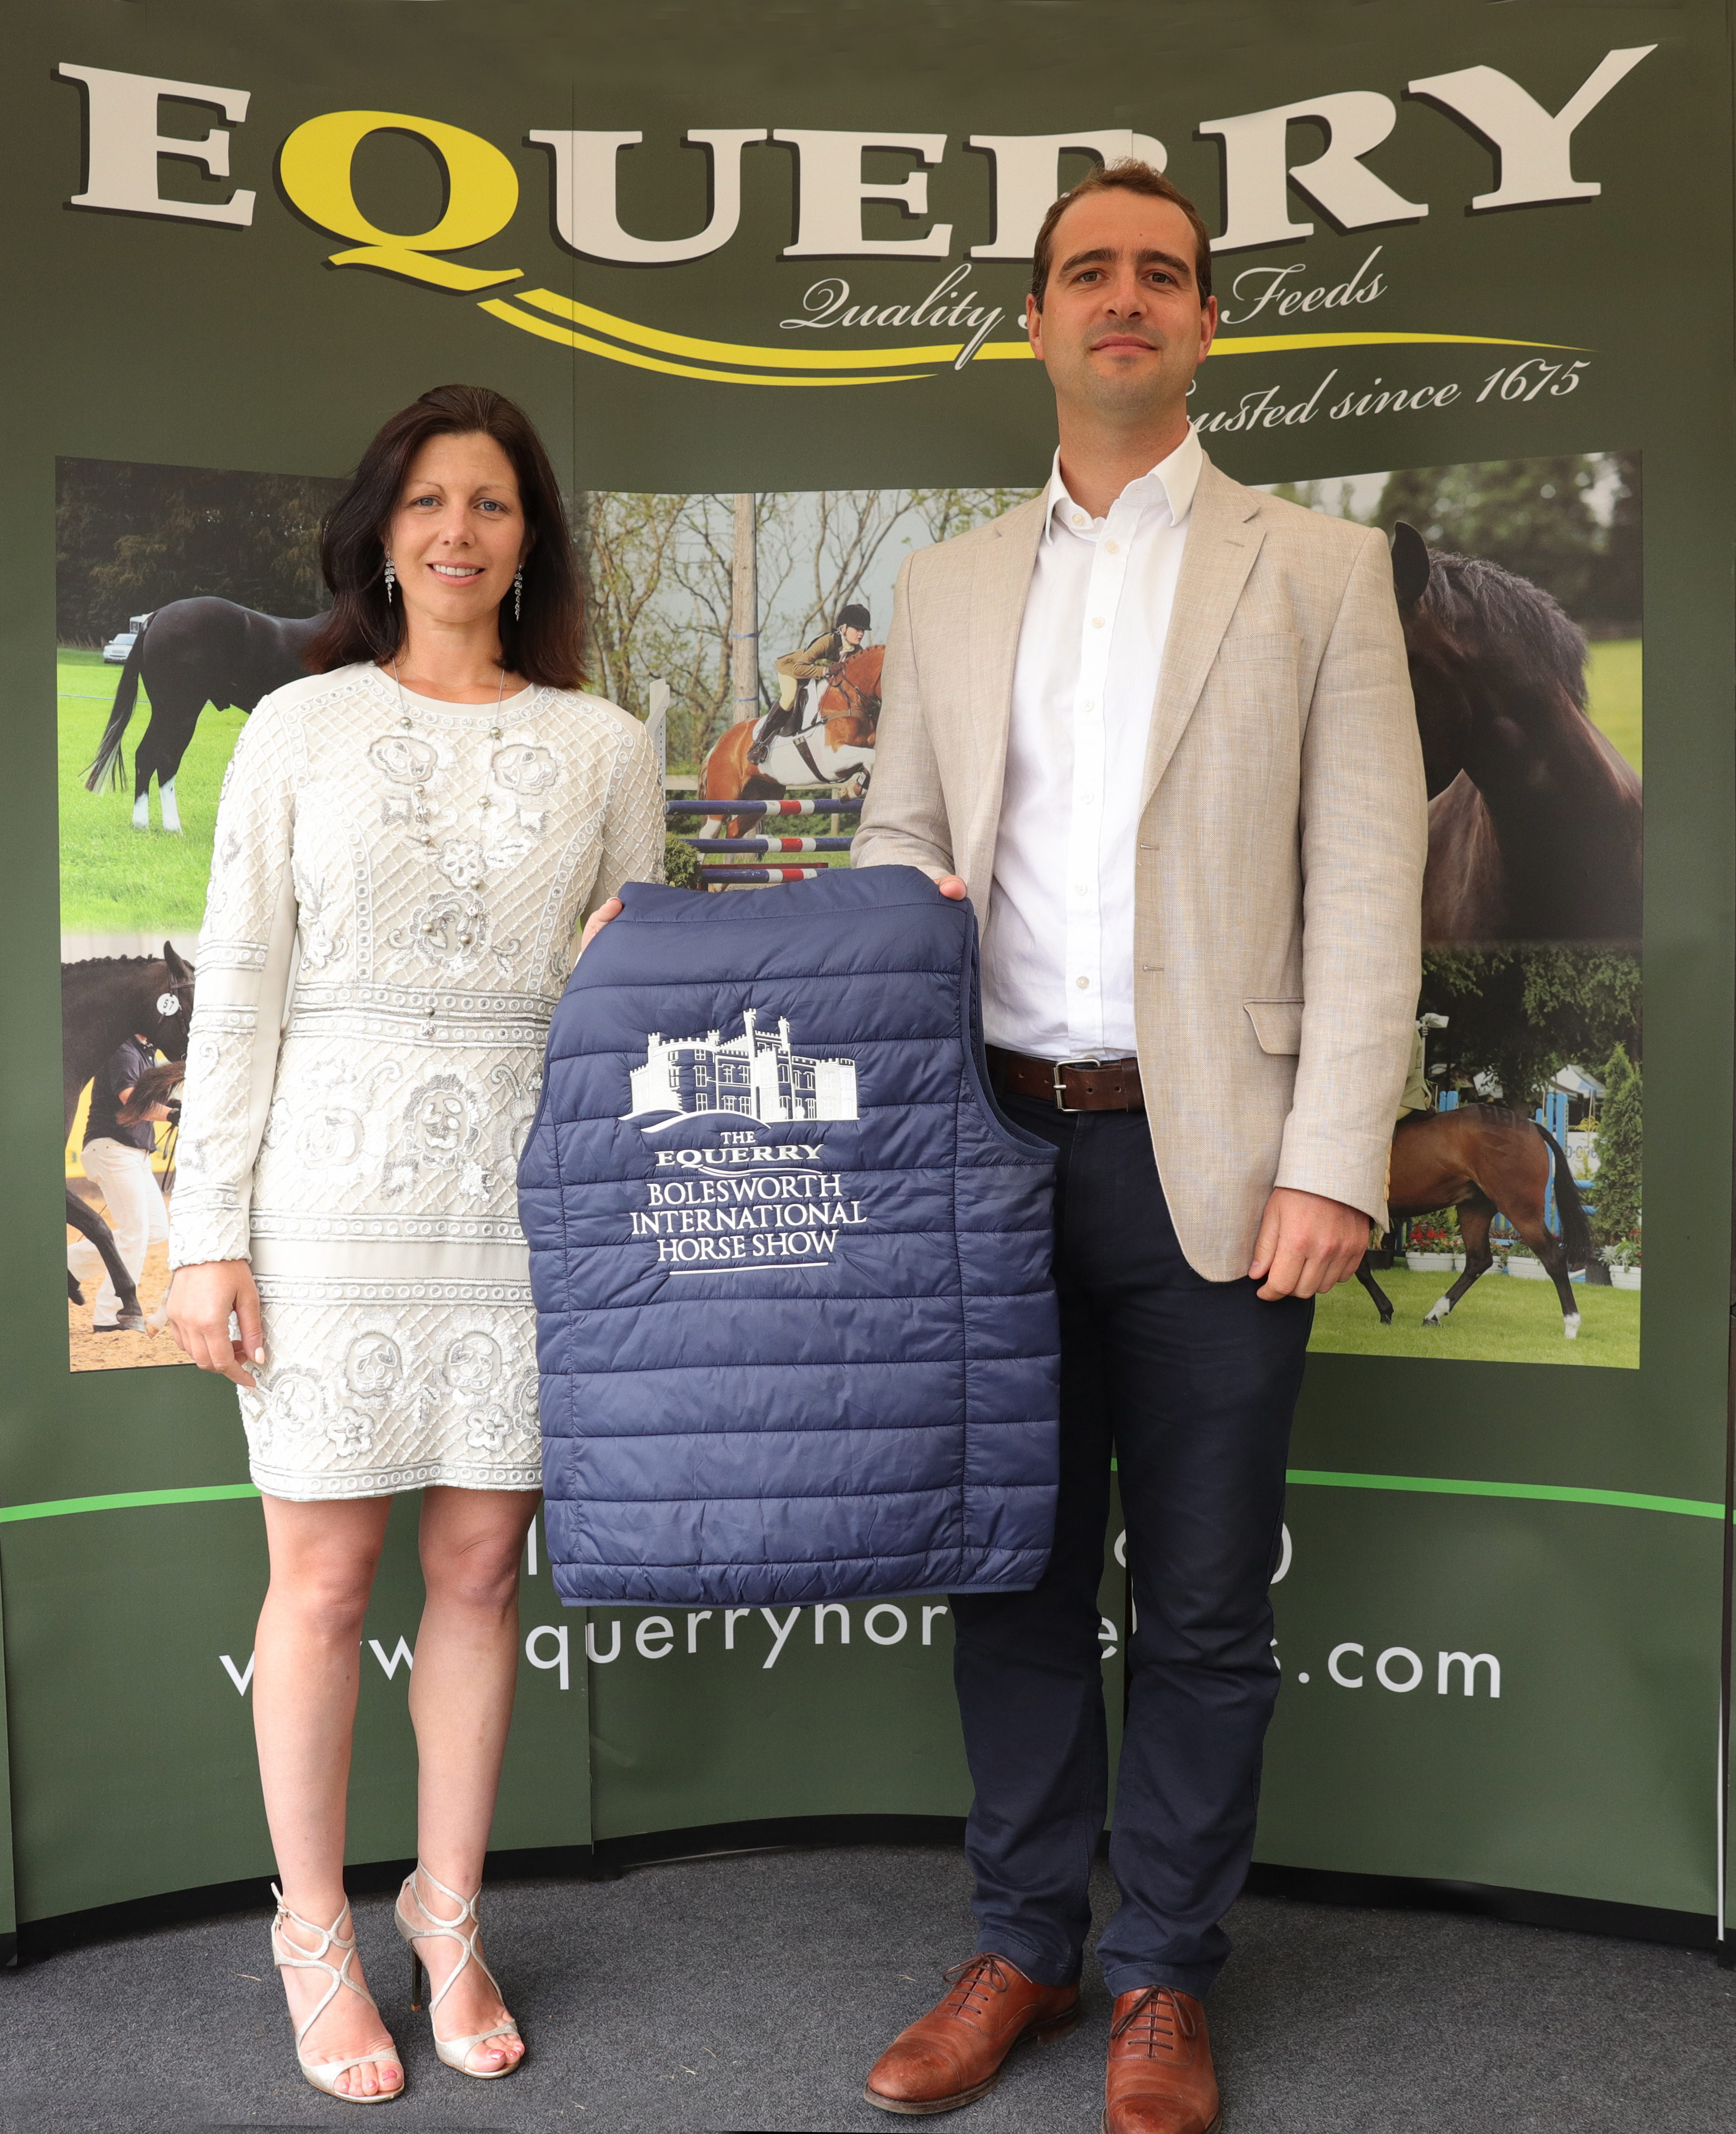 bolesworth international sponsorship goes from strength to strength